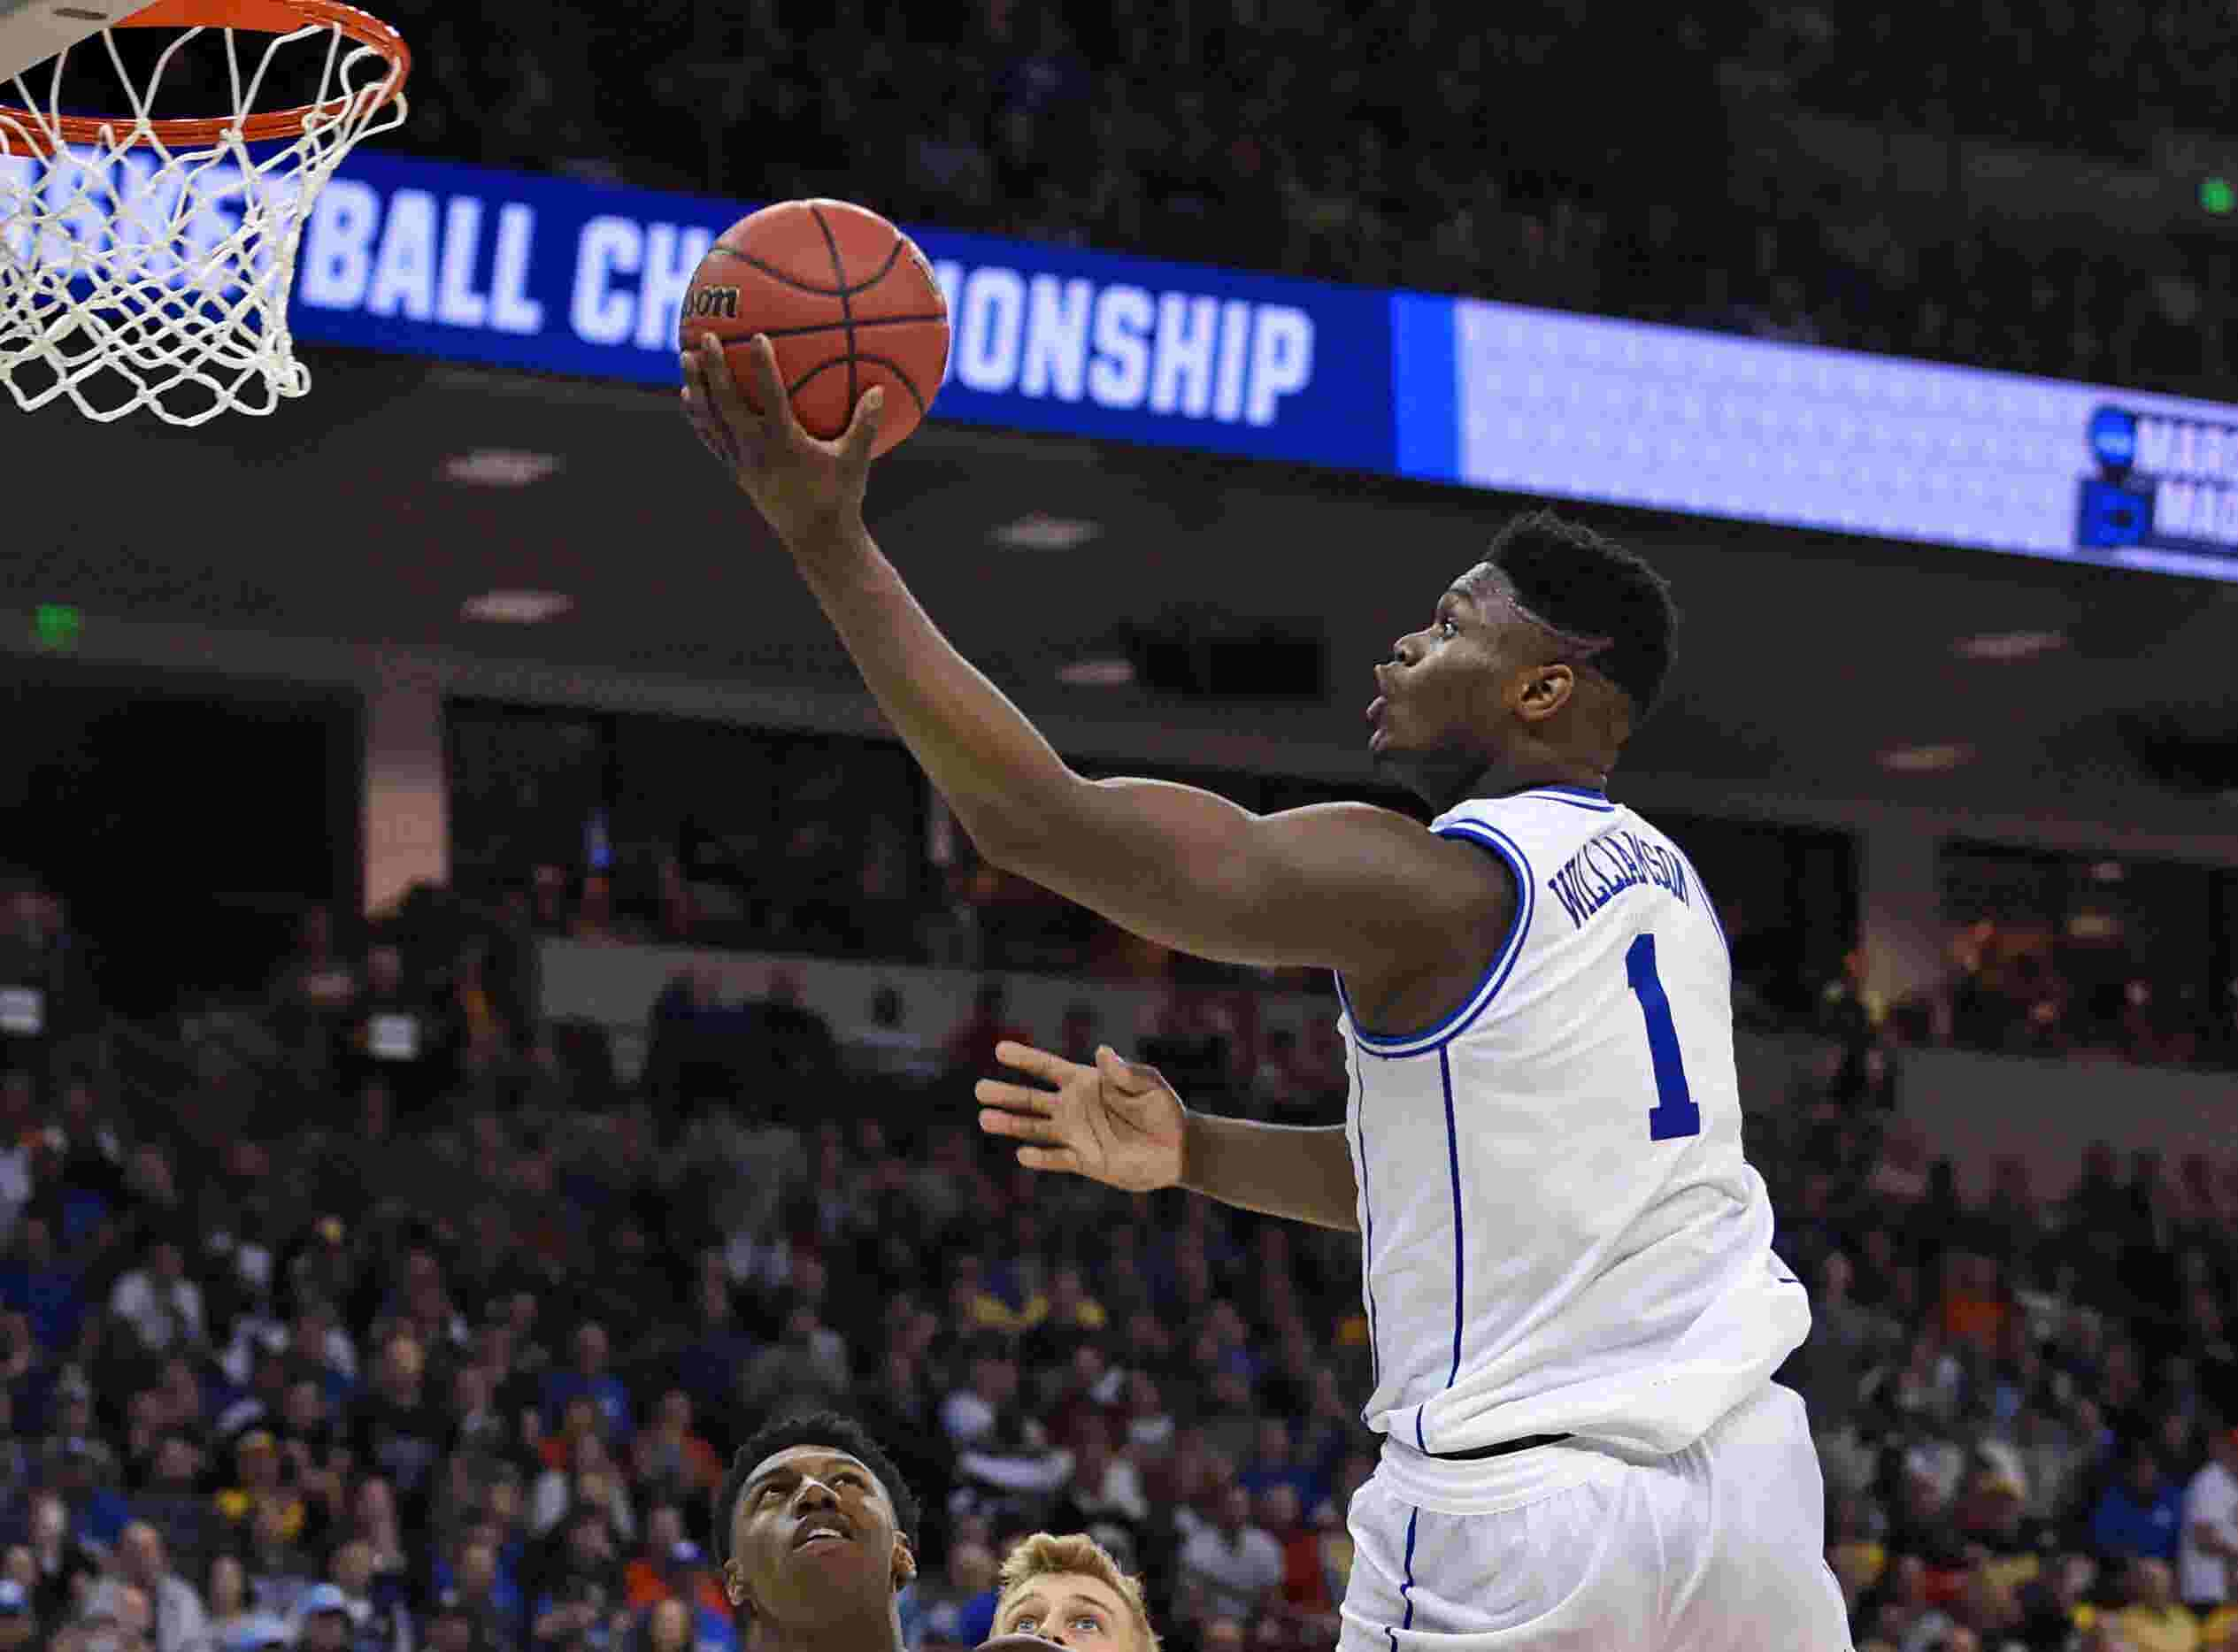 d29f9bbd7037 Everything you need to know about Saturday s games at the NCAA men s  basketball tournament